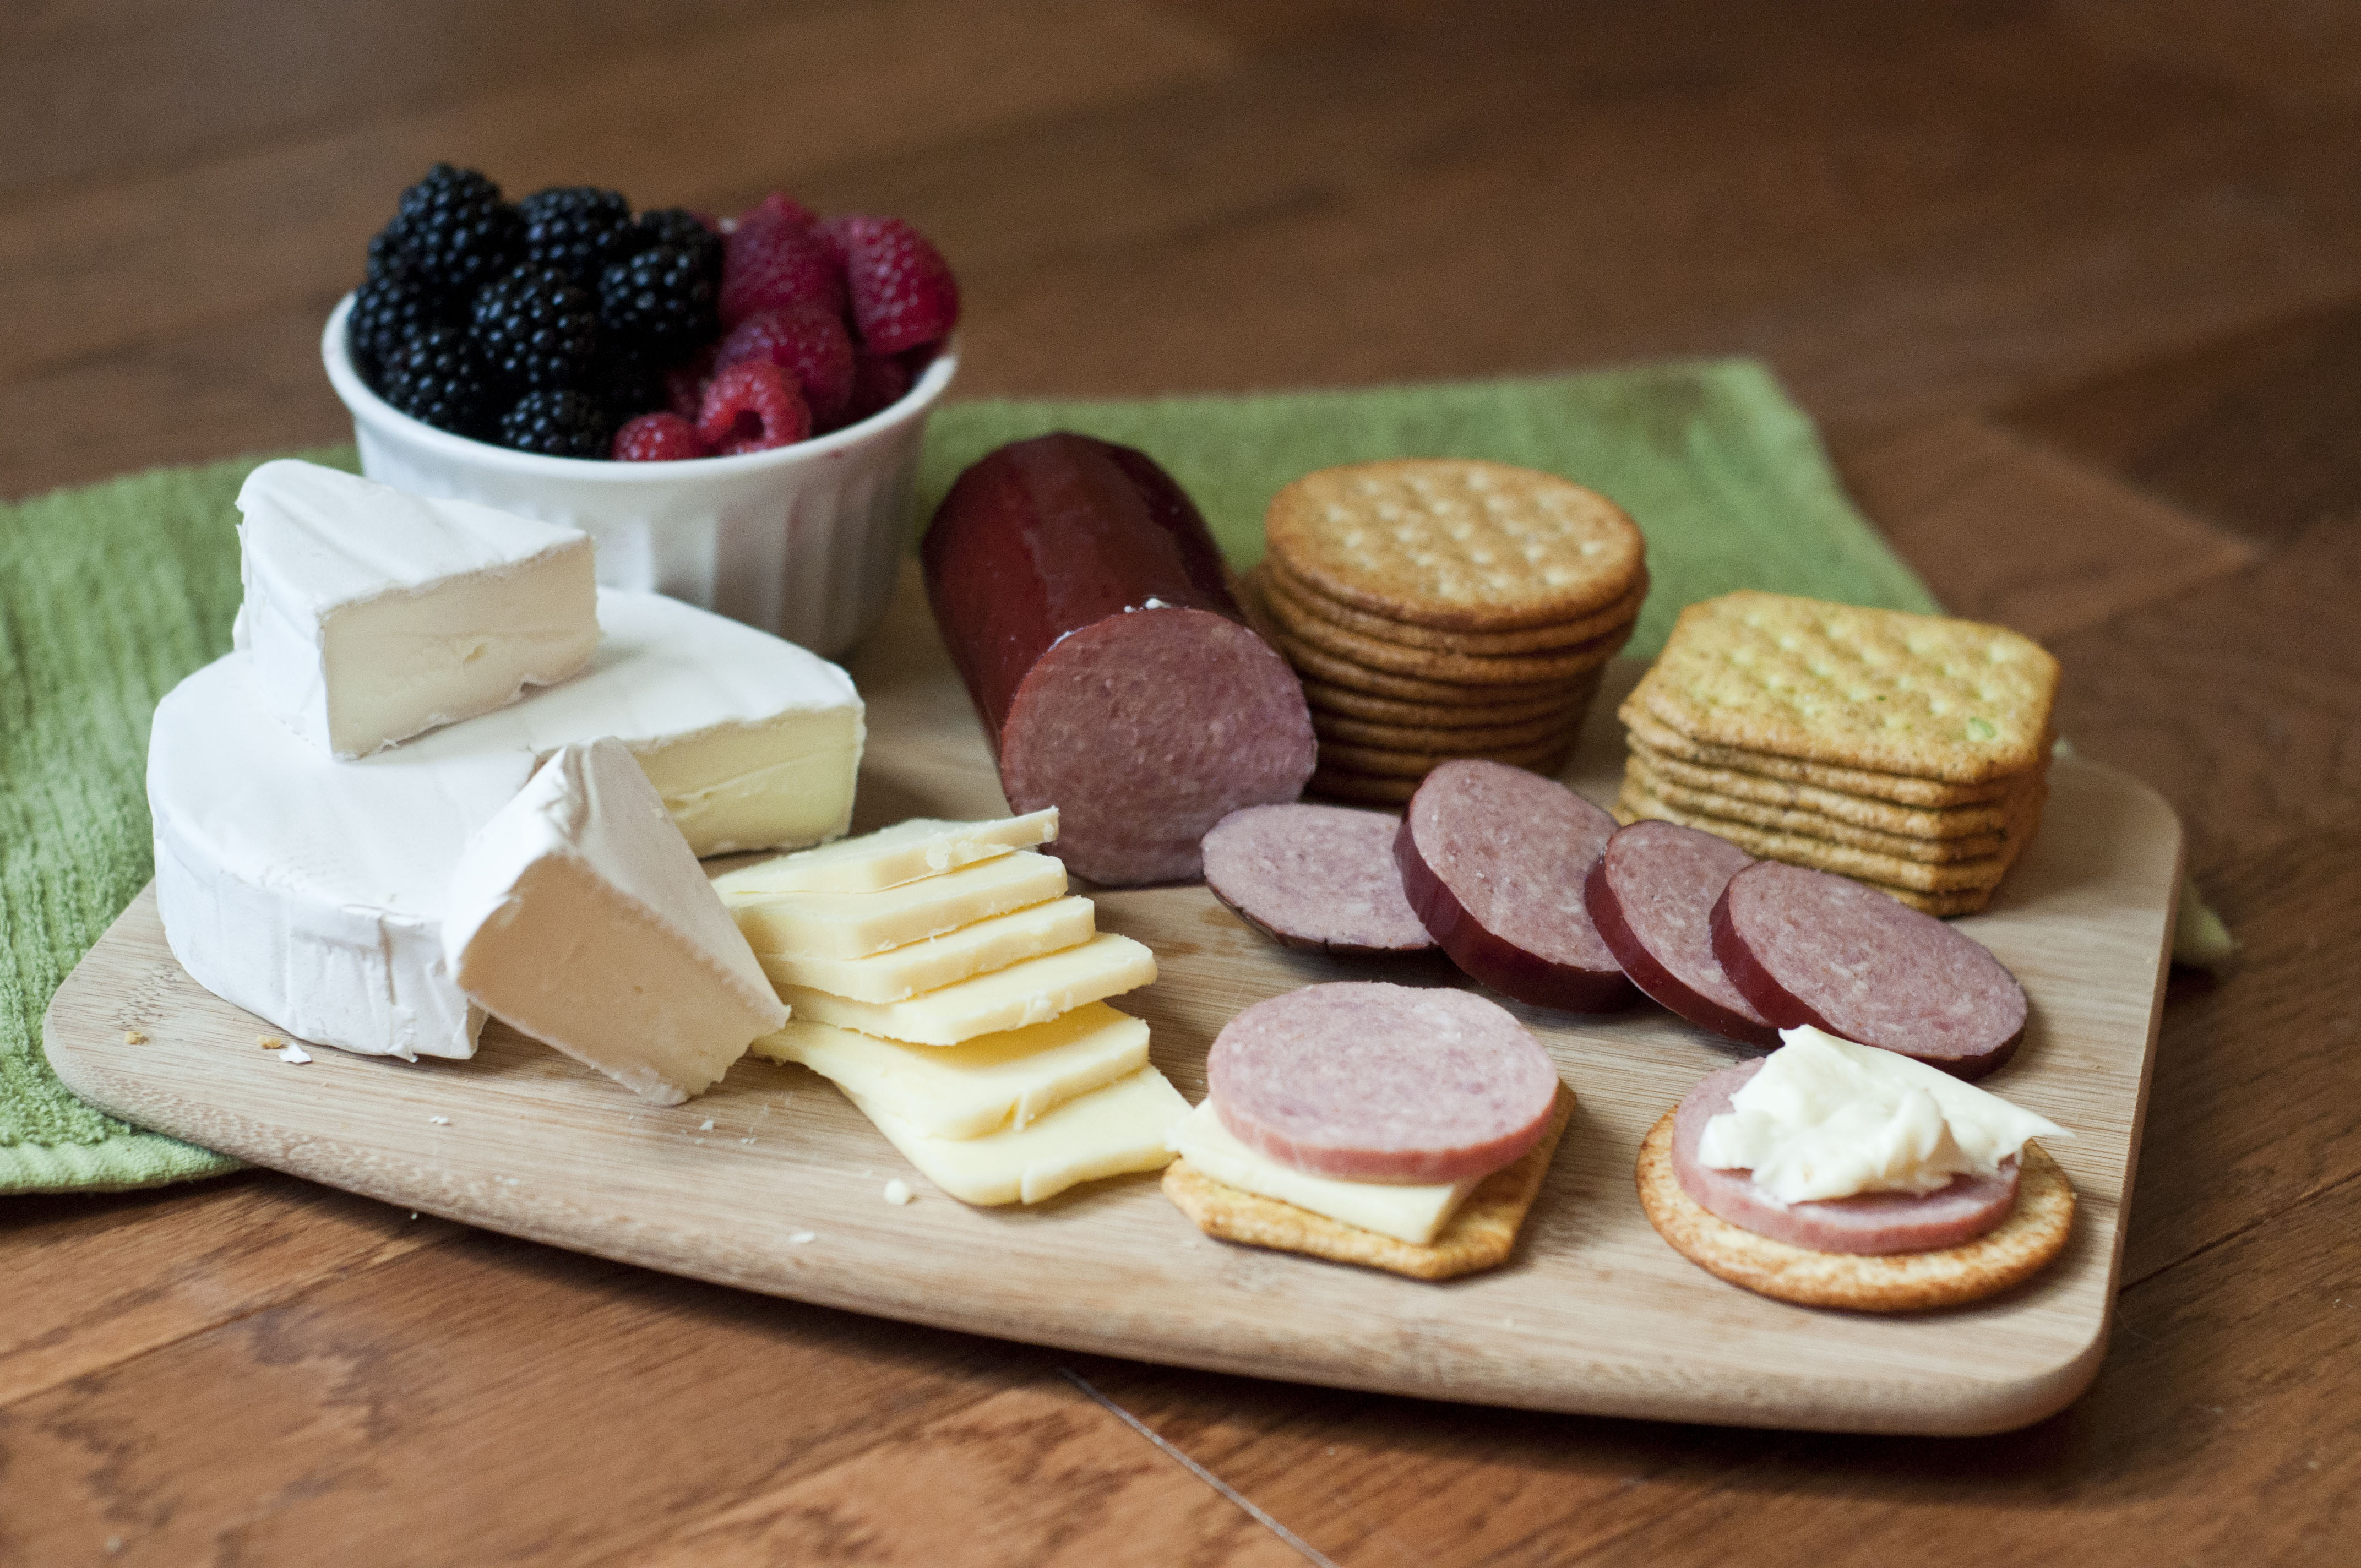 This photo is a colorful example of a Cheese Board appetizer using Petit Jean Summer Sausage. On this cheese board is summer sausage, brie, extra sharp aged white cheddar, crackers and berries.